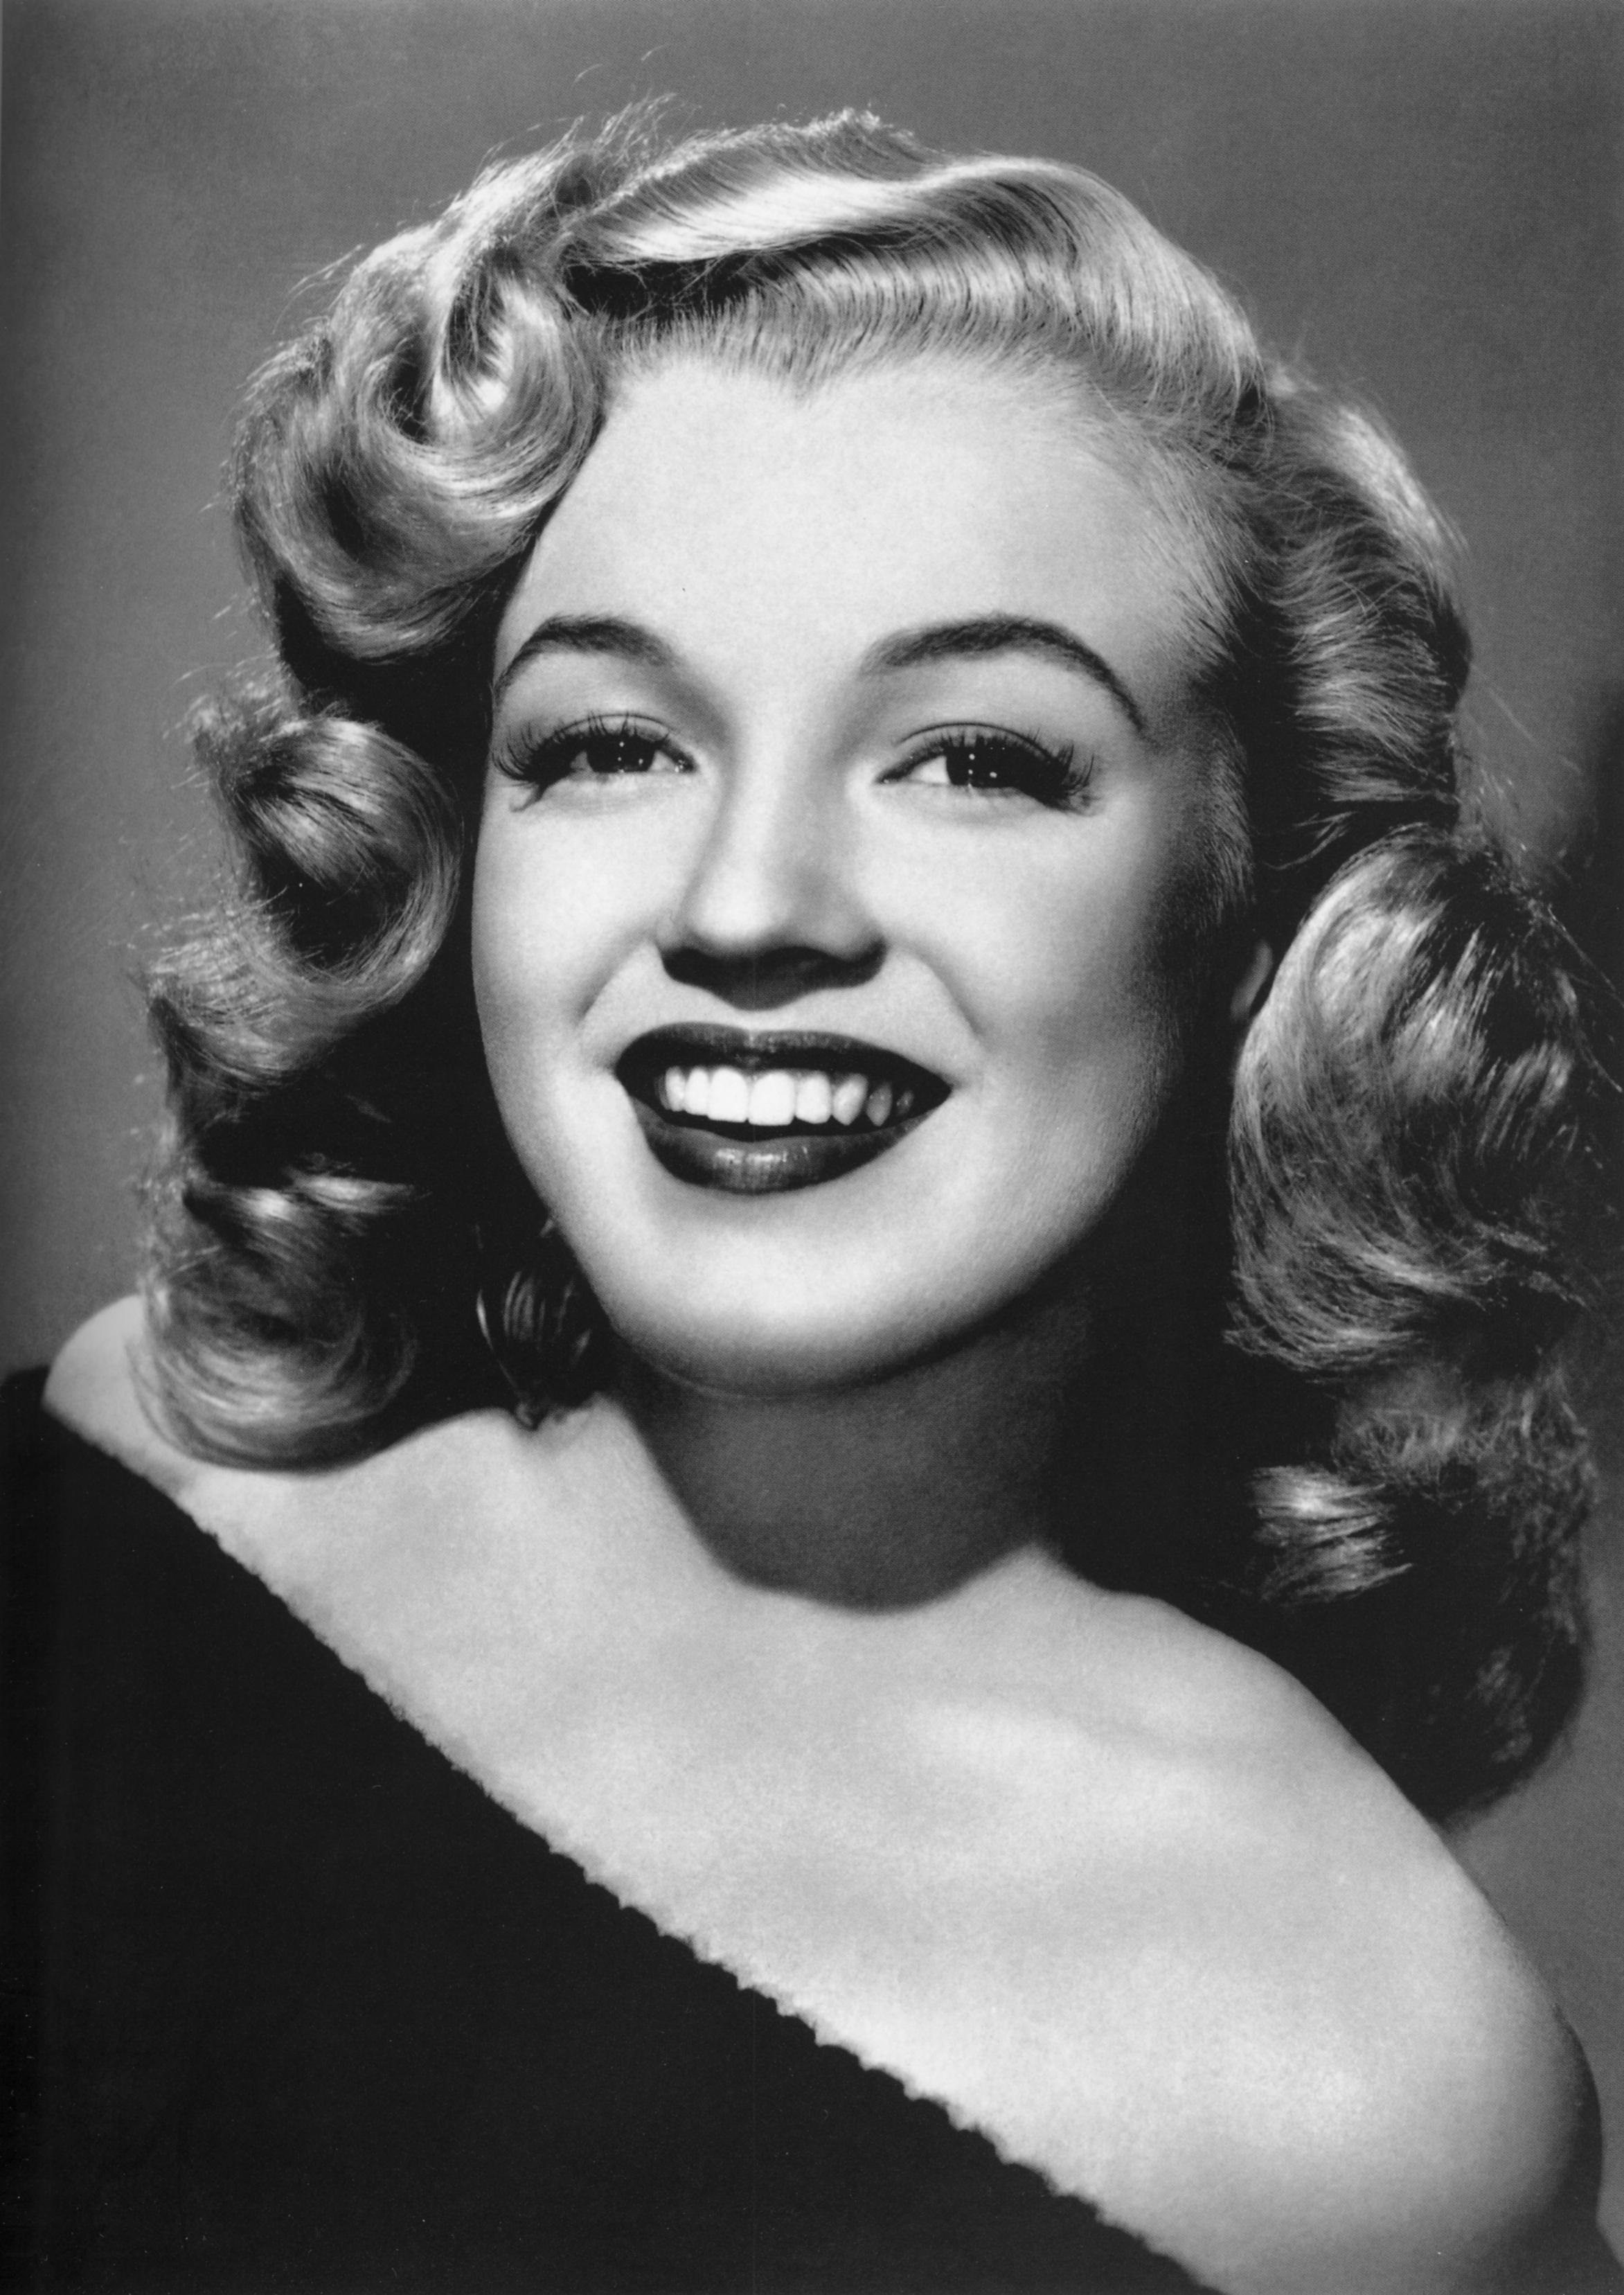 File:Portrait of young Marilyn Monroe, black and white.jpg - Wikimedia  Commons